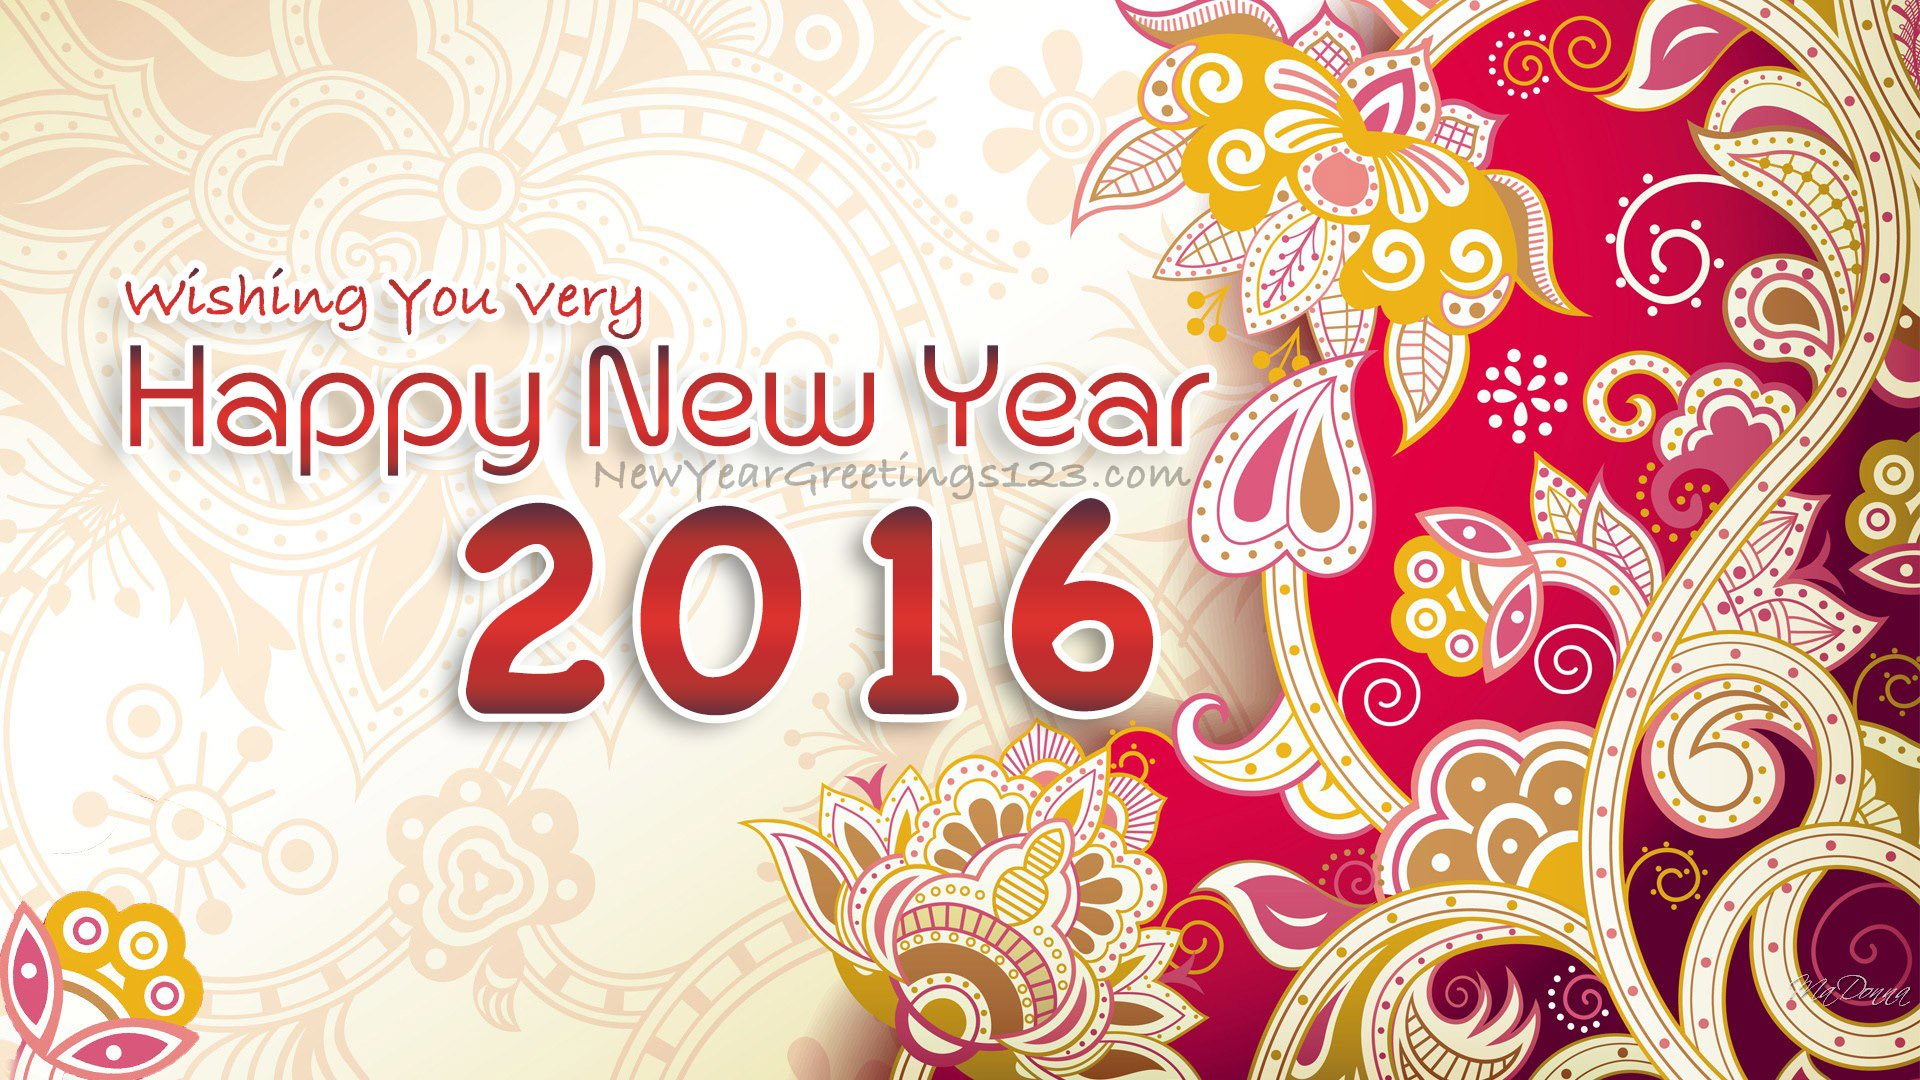 Wallpaper download new year 2016 - Best Happy New Year 2016 Art Hd Wallpaper 2016 Download